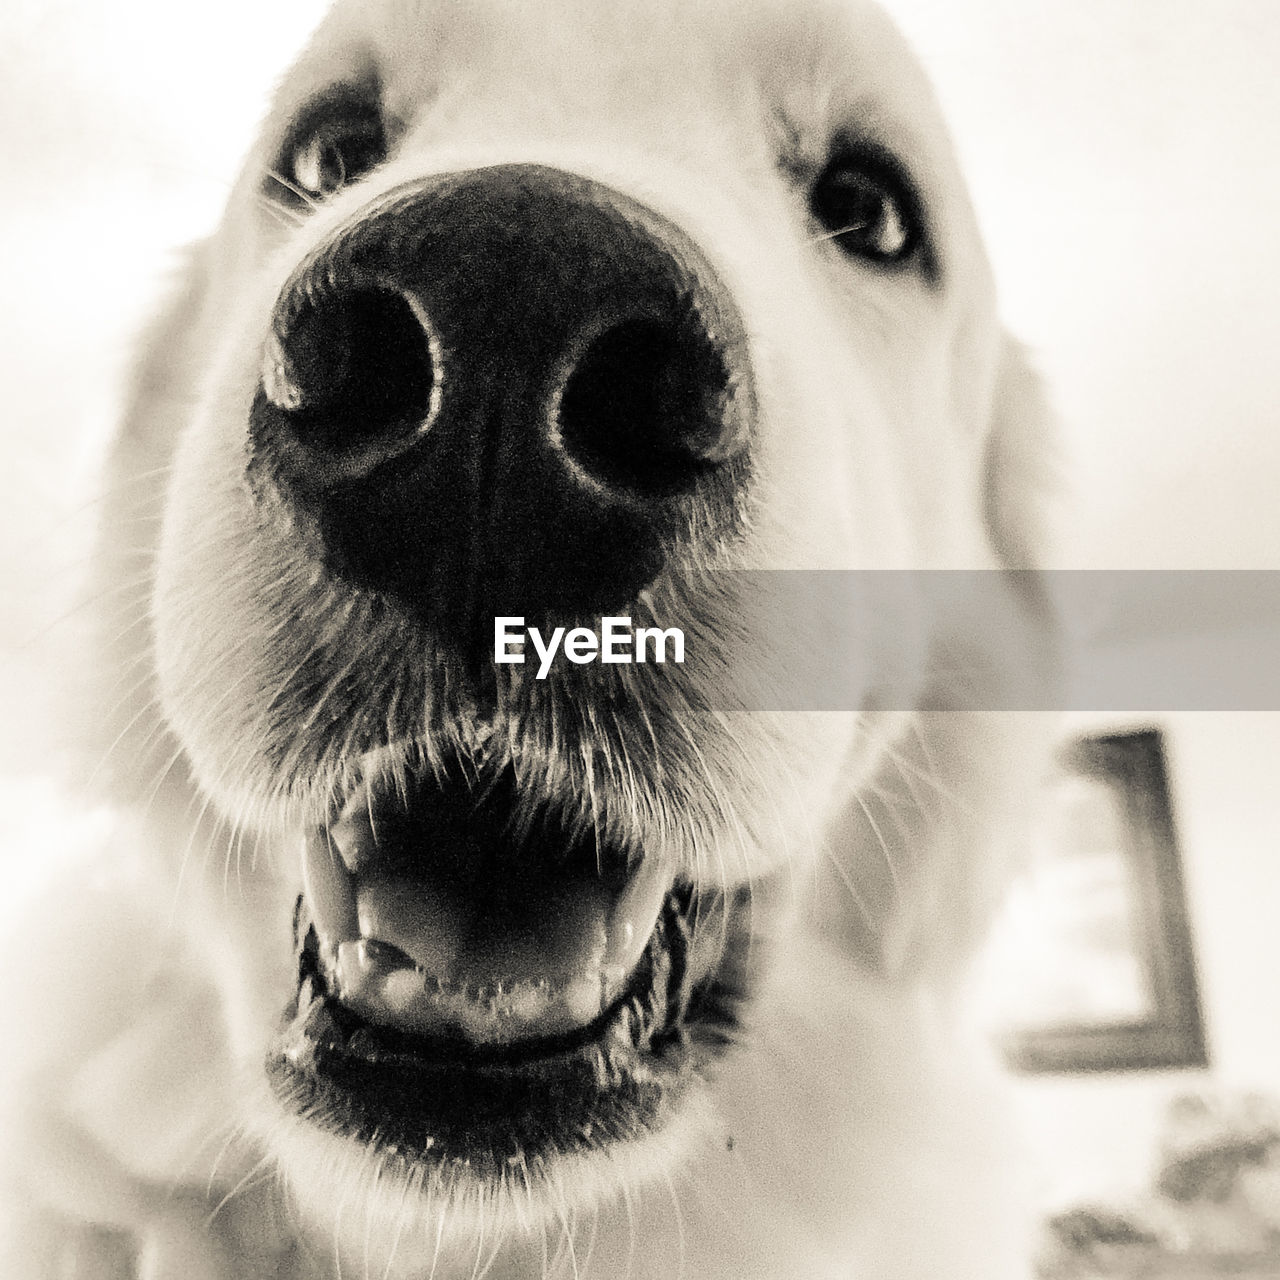 dog, one animal, pets, domestic animals, animal themes, animal head, mammal, portrait, looking at camera, close-up, animal nose, no people, indoors, day